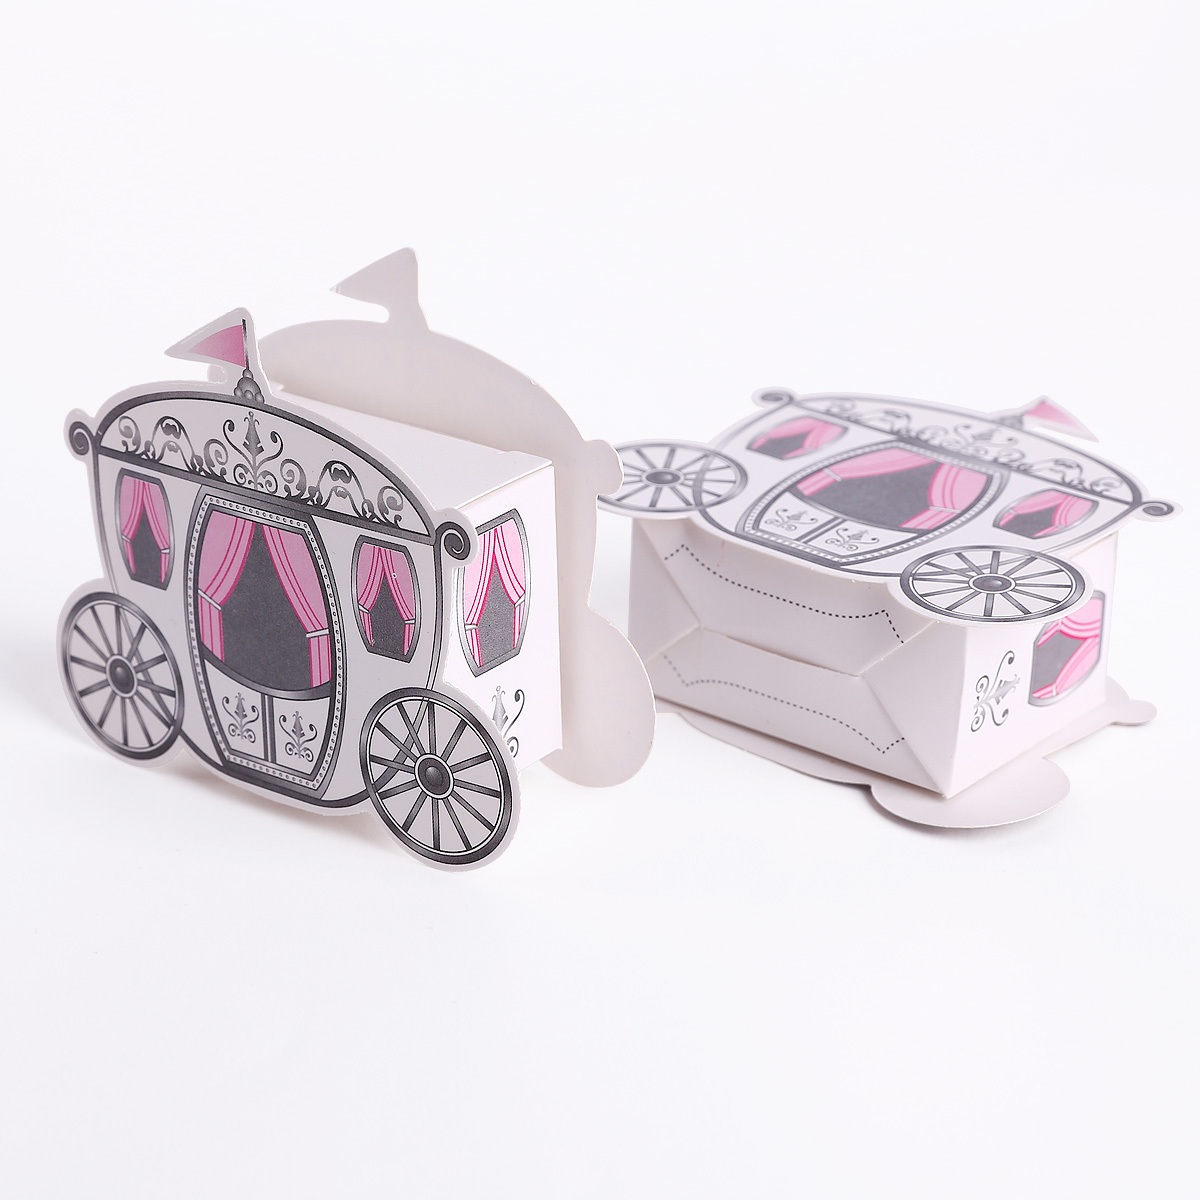 50 100pcs Cinderella Fairytale Princess Carriage Wedding Favour ... eb6c345f3